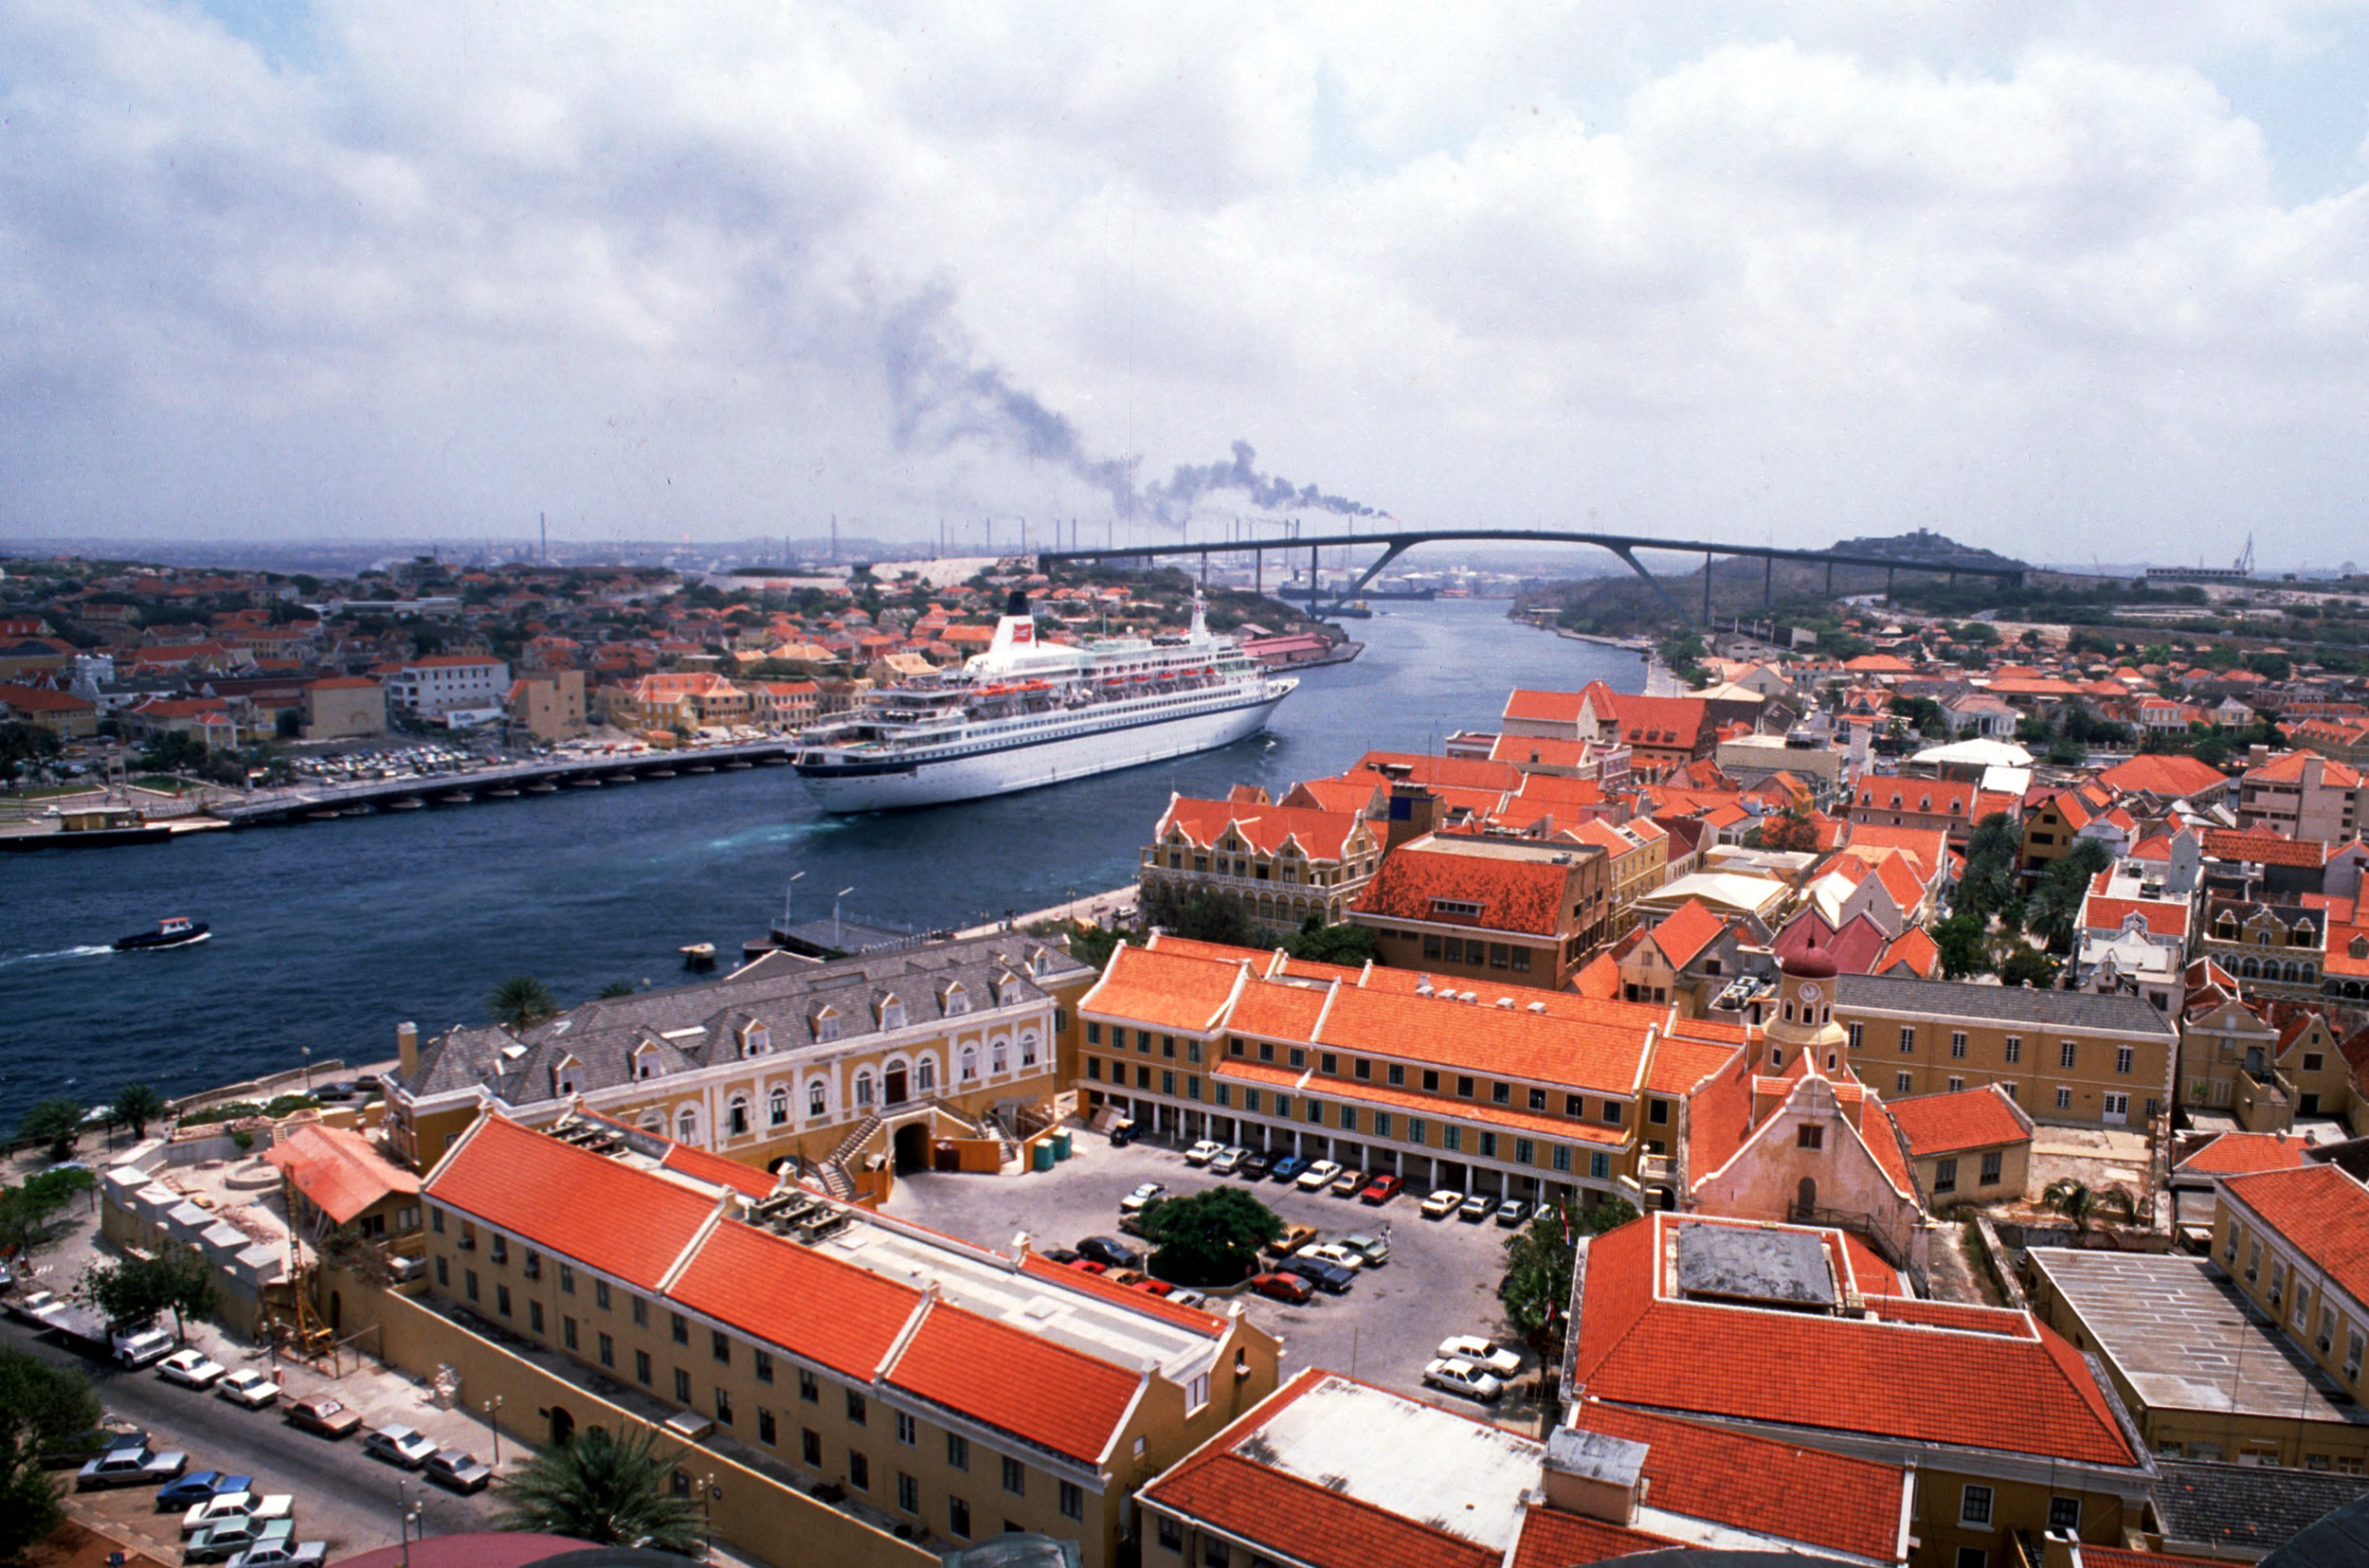 cruise cruiseschip vakantie vrije tijd Nederlandse Antillen Curacao brug water huizen overzicht over Punda Ottrabanda Schottegat Willemstad Julianabrug cruiseboot haven mensen